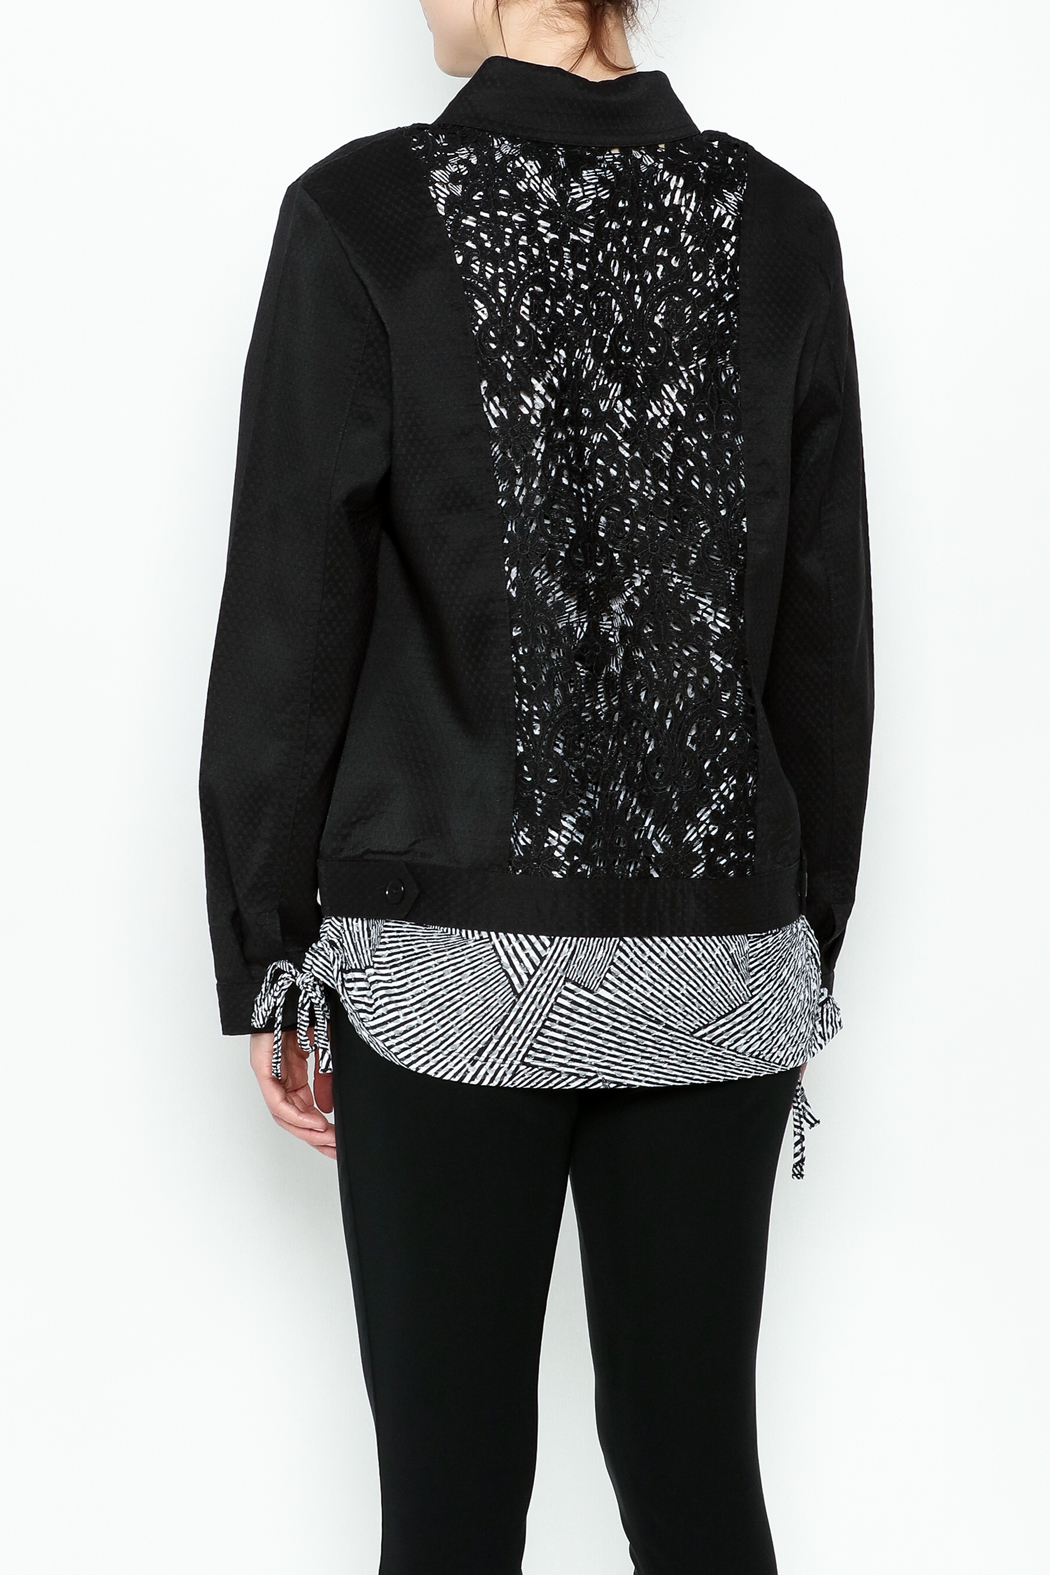 Erin London Black Lace Classy Jacket - Back Cropped Image